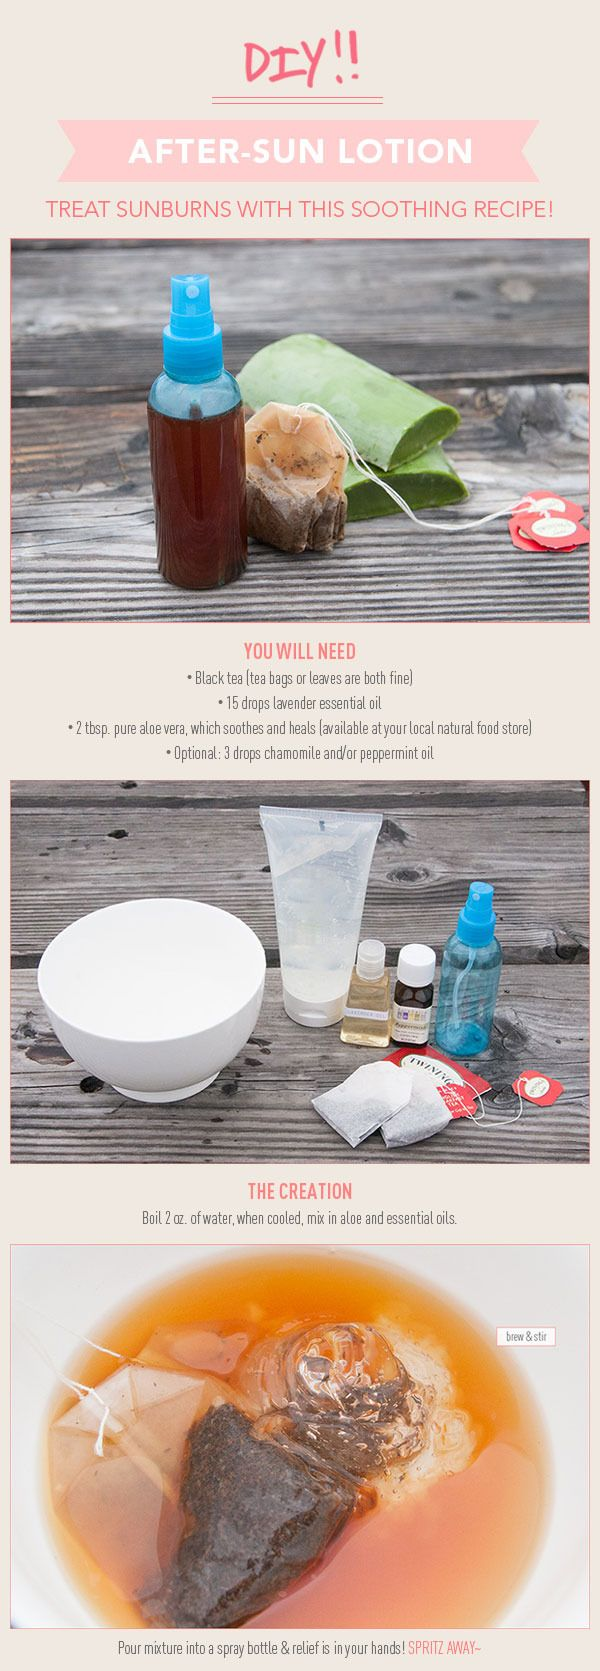 Easy DIY After-Sun Lotion